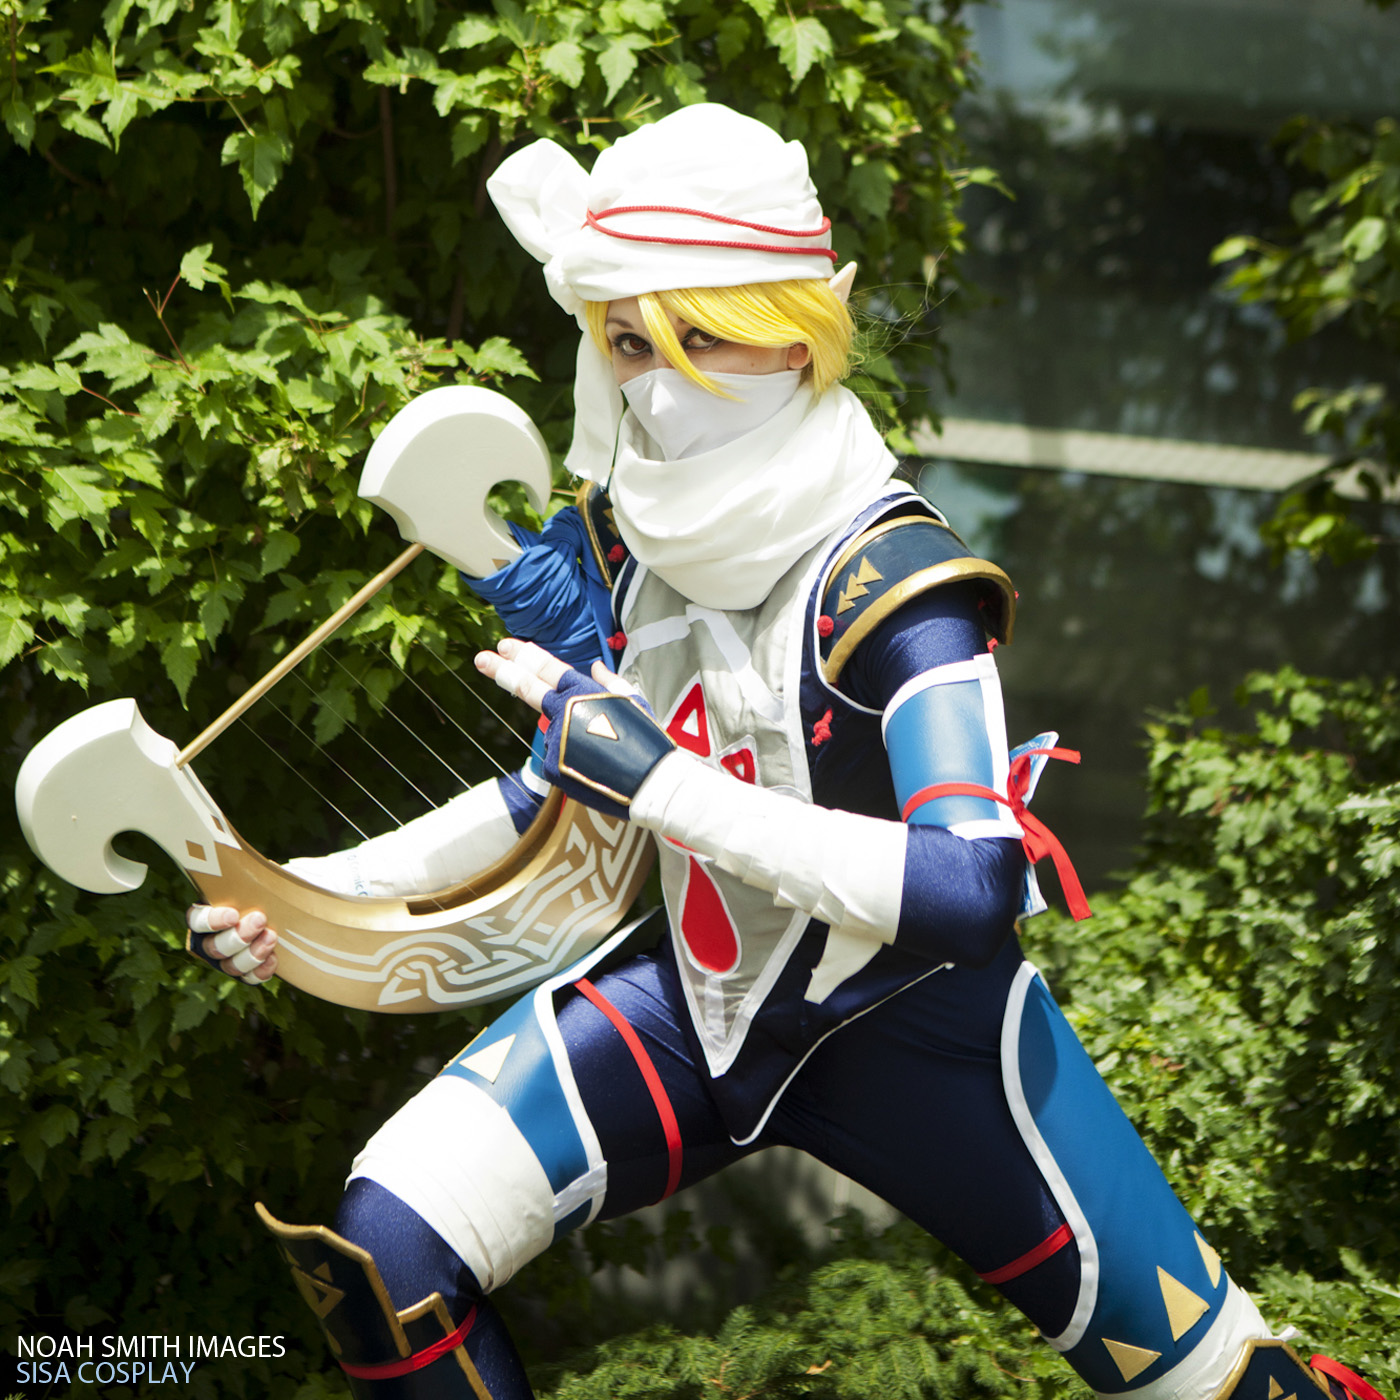 Noah-Smith-Sisa-Cosplay-Sheik-2